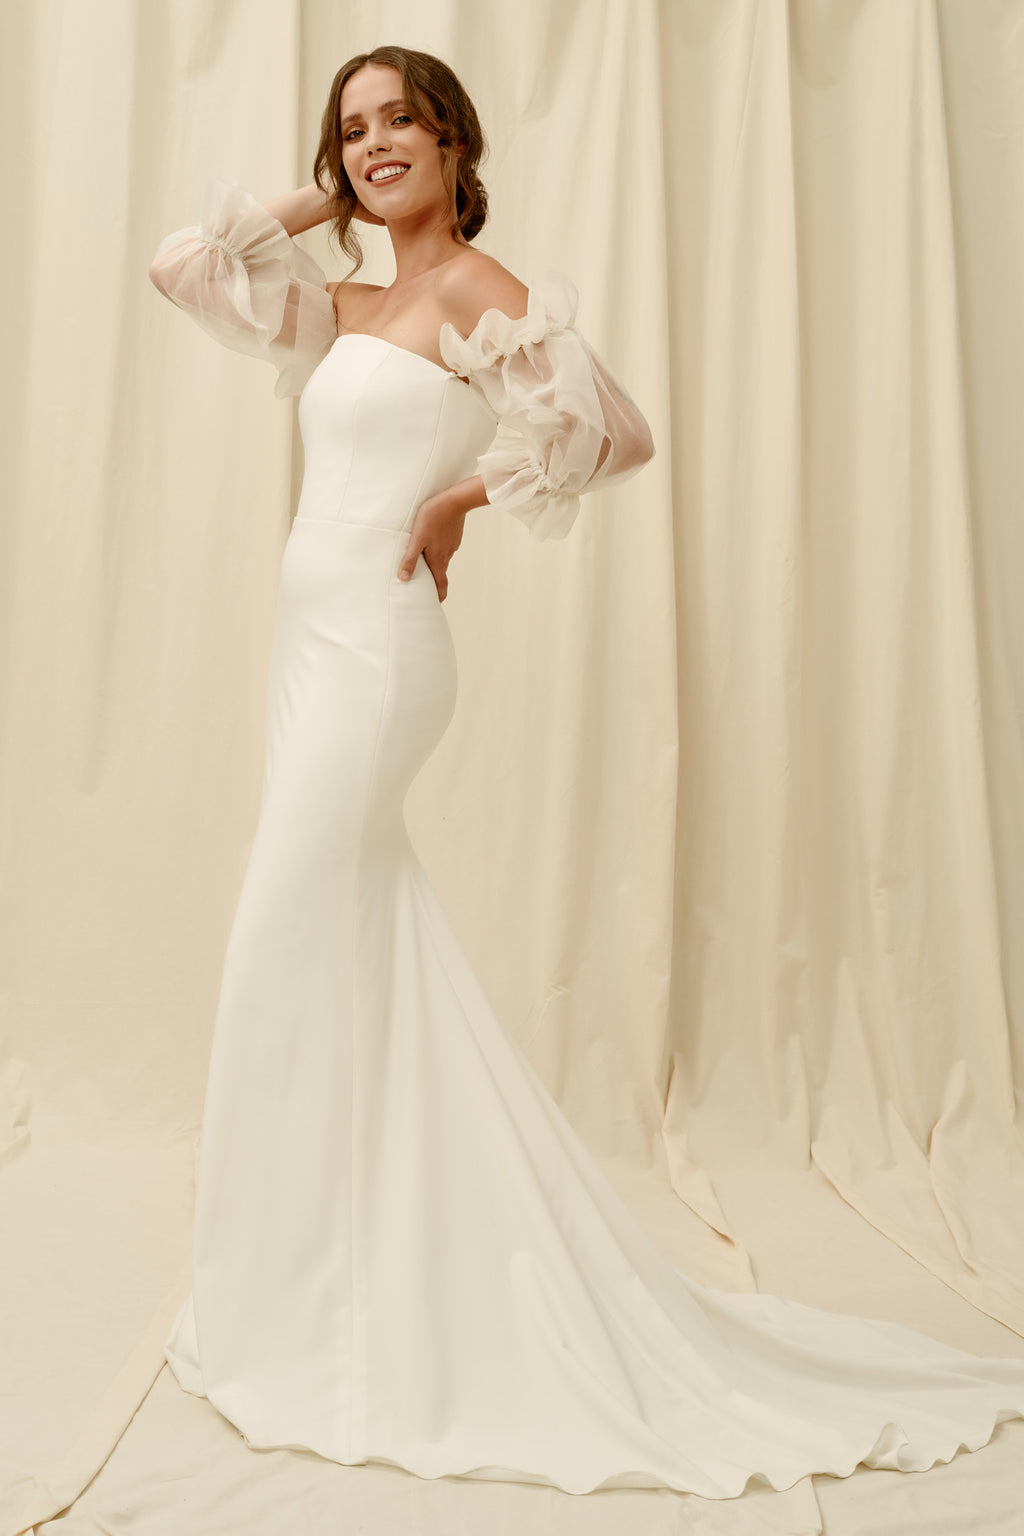 Strapless crepe wedding dress with removable puff sleeves